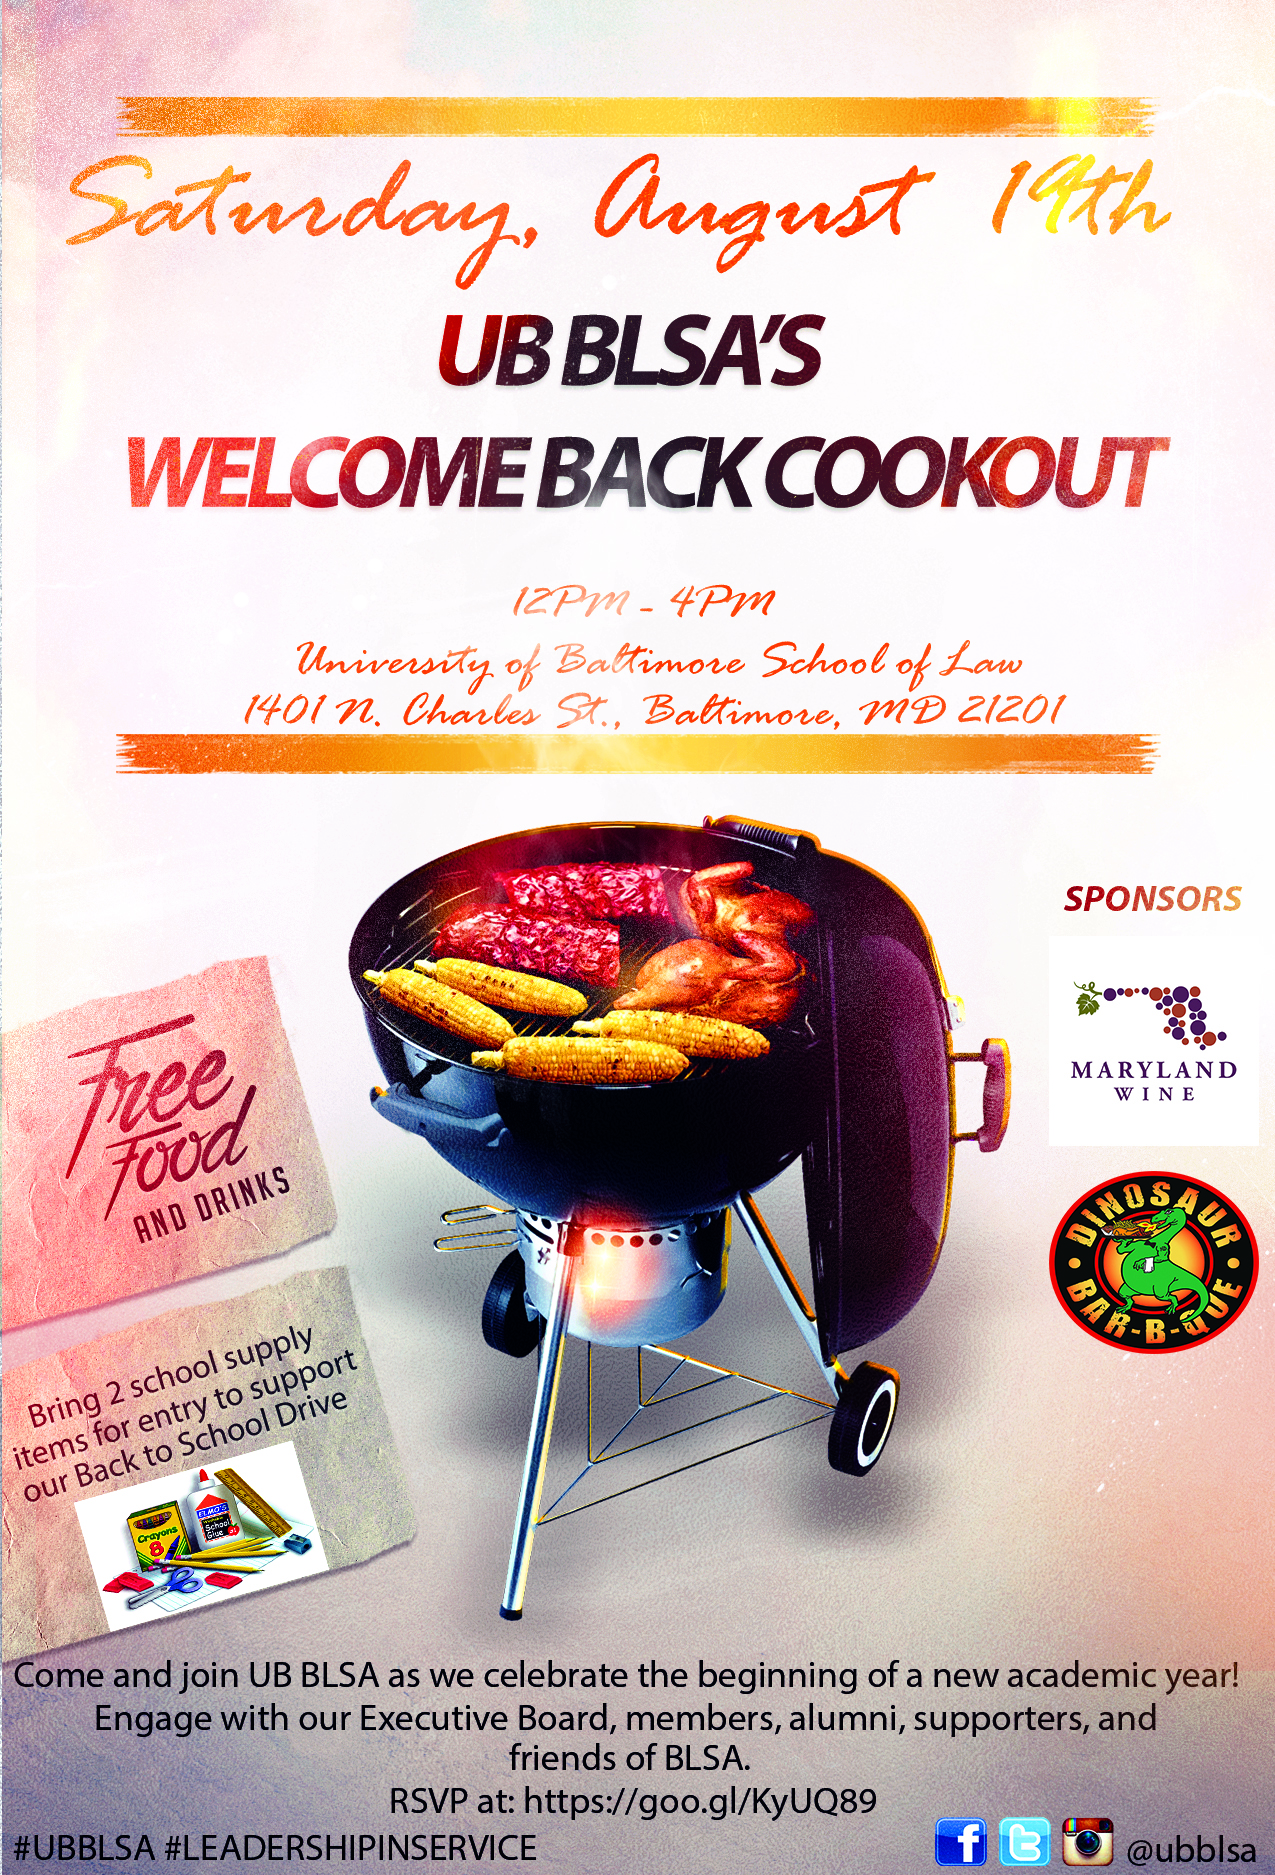 UB BLSA's Welcome Back Cookout